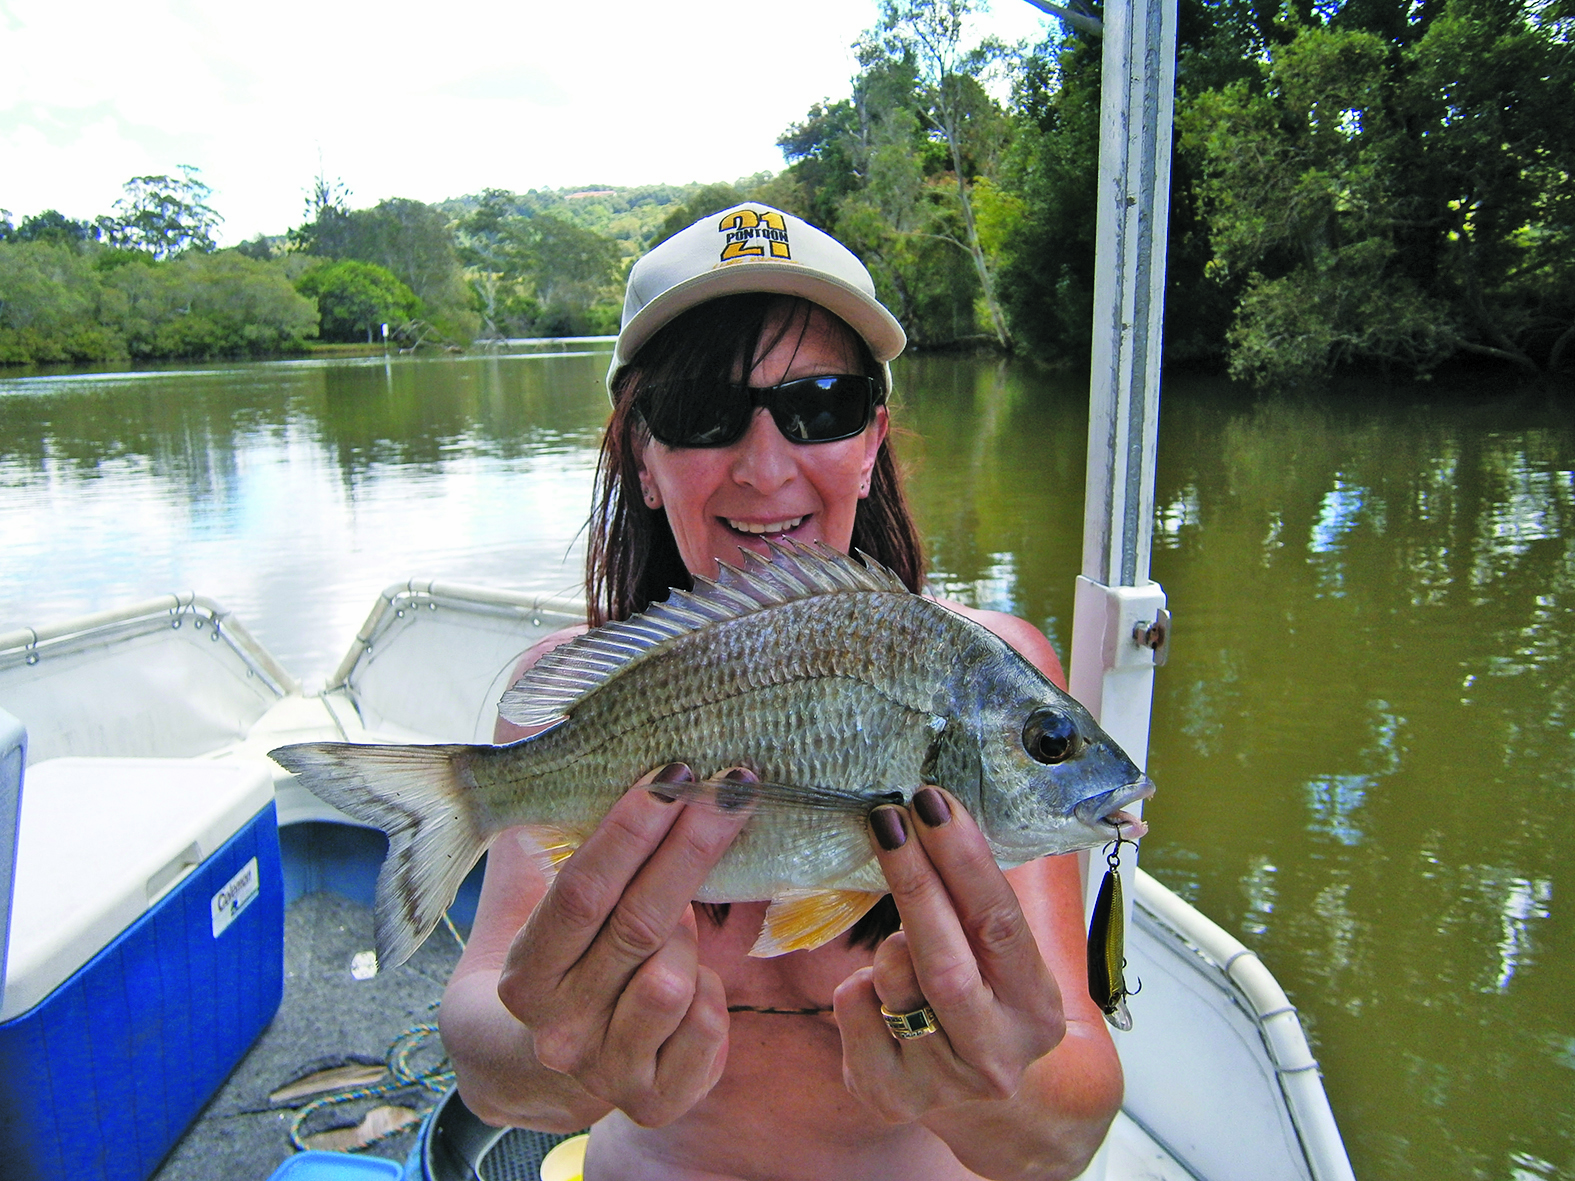 The author's wife Angie enjoys having a go for bream on lures.